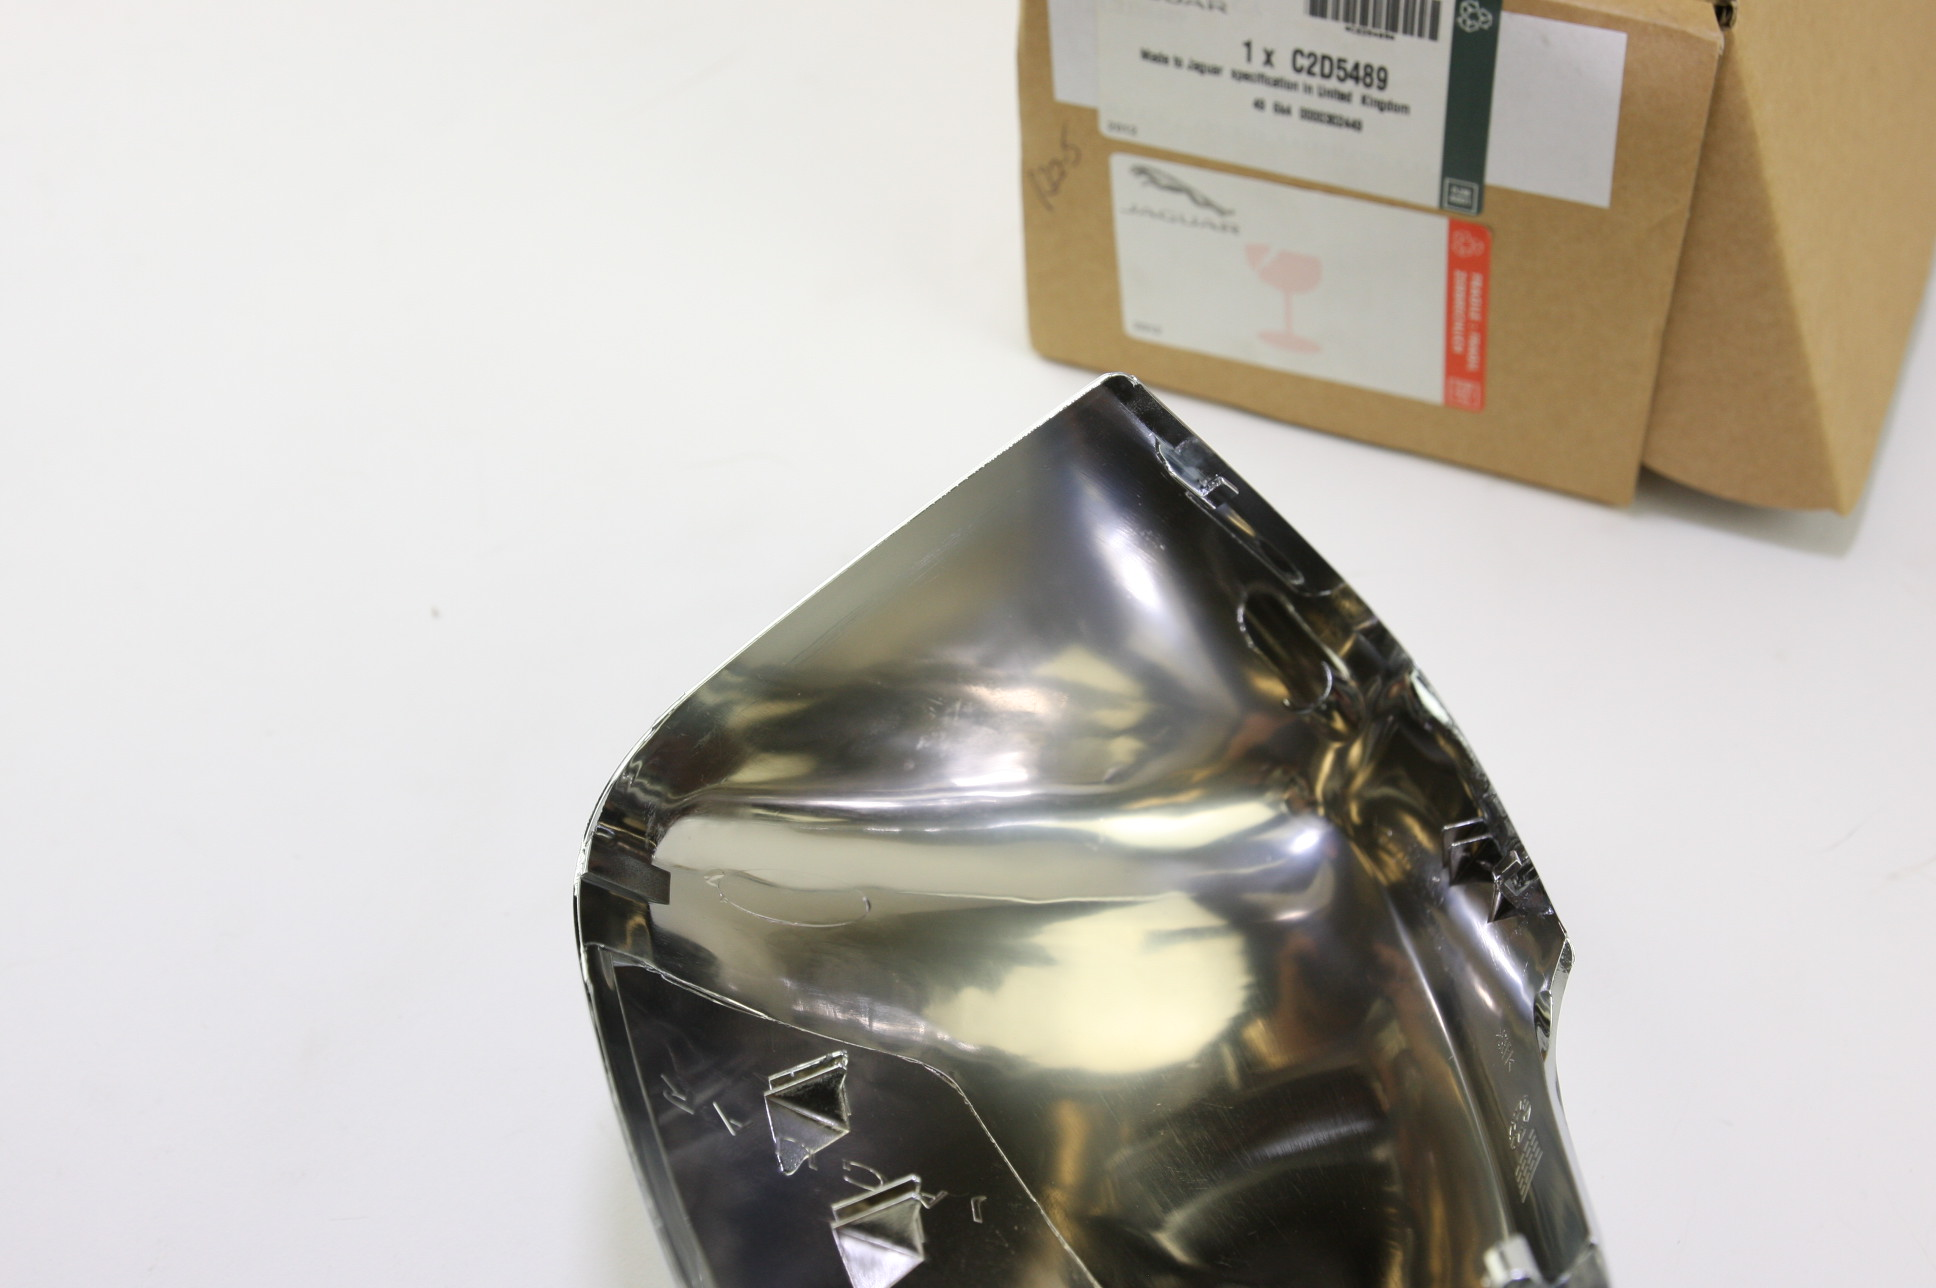 * New OEM C2D5489 Genuine Jaguar Driver Left Side Door Mirror Back Cover Chrome - image 6